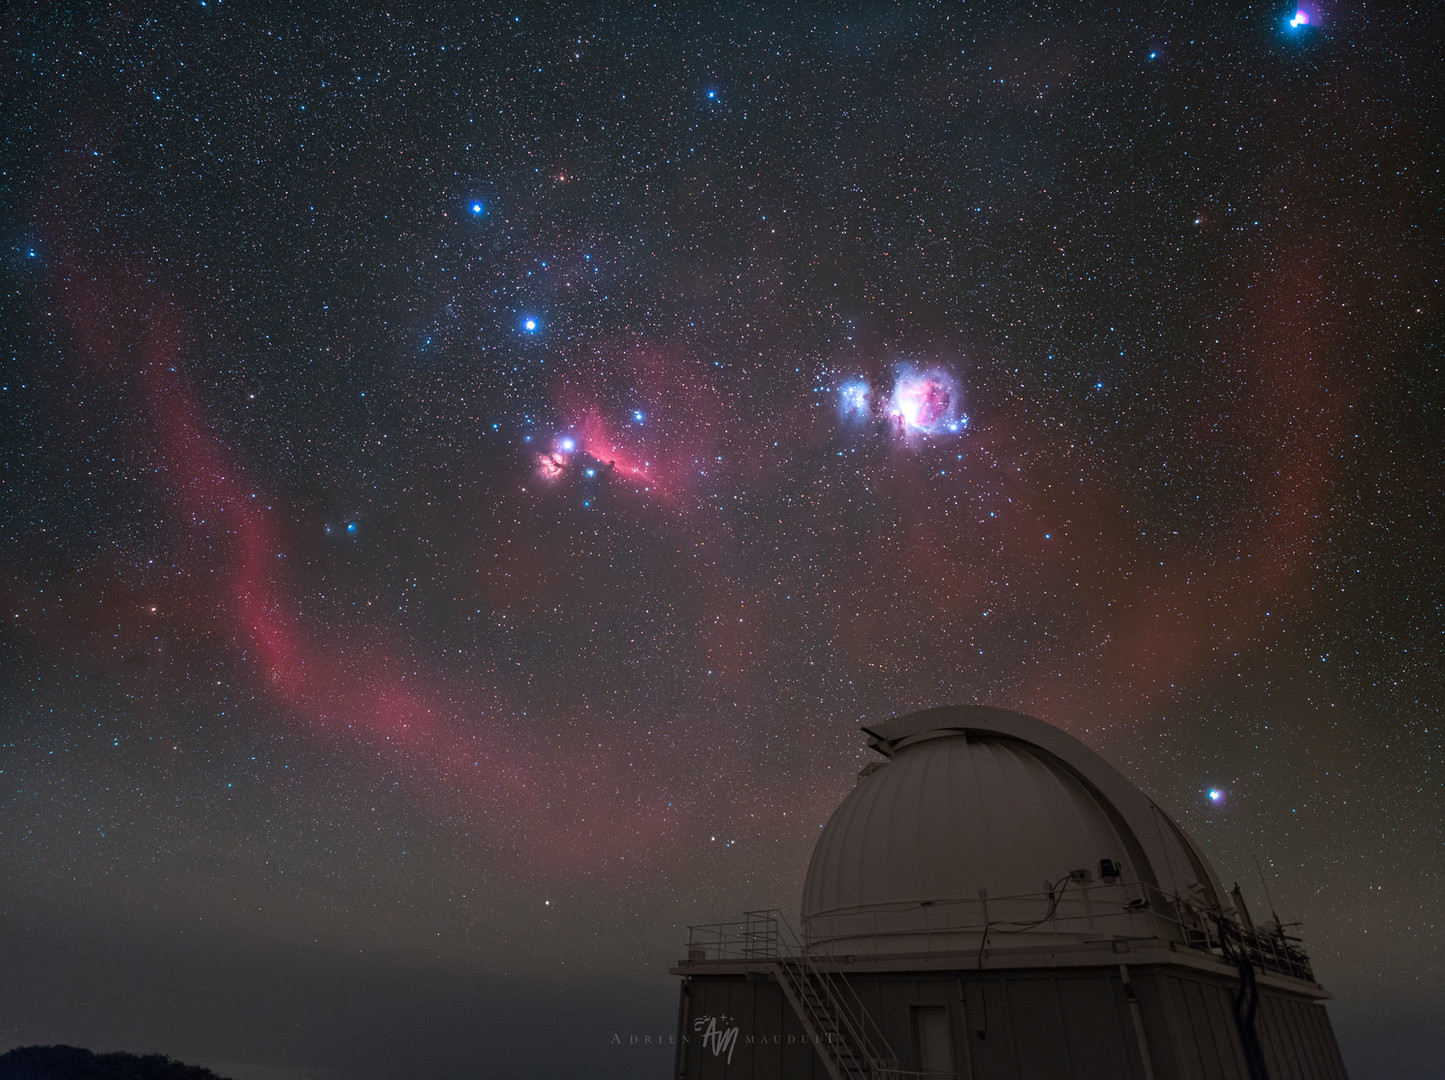 If Orion was close by...